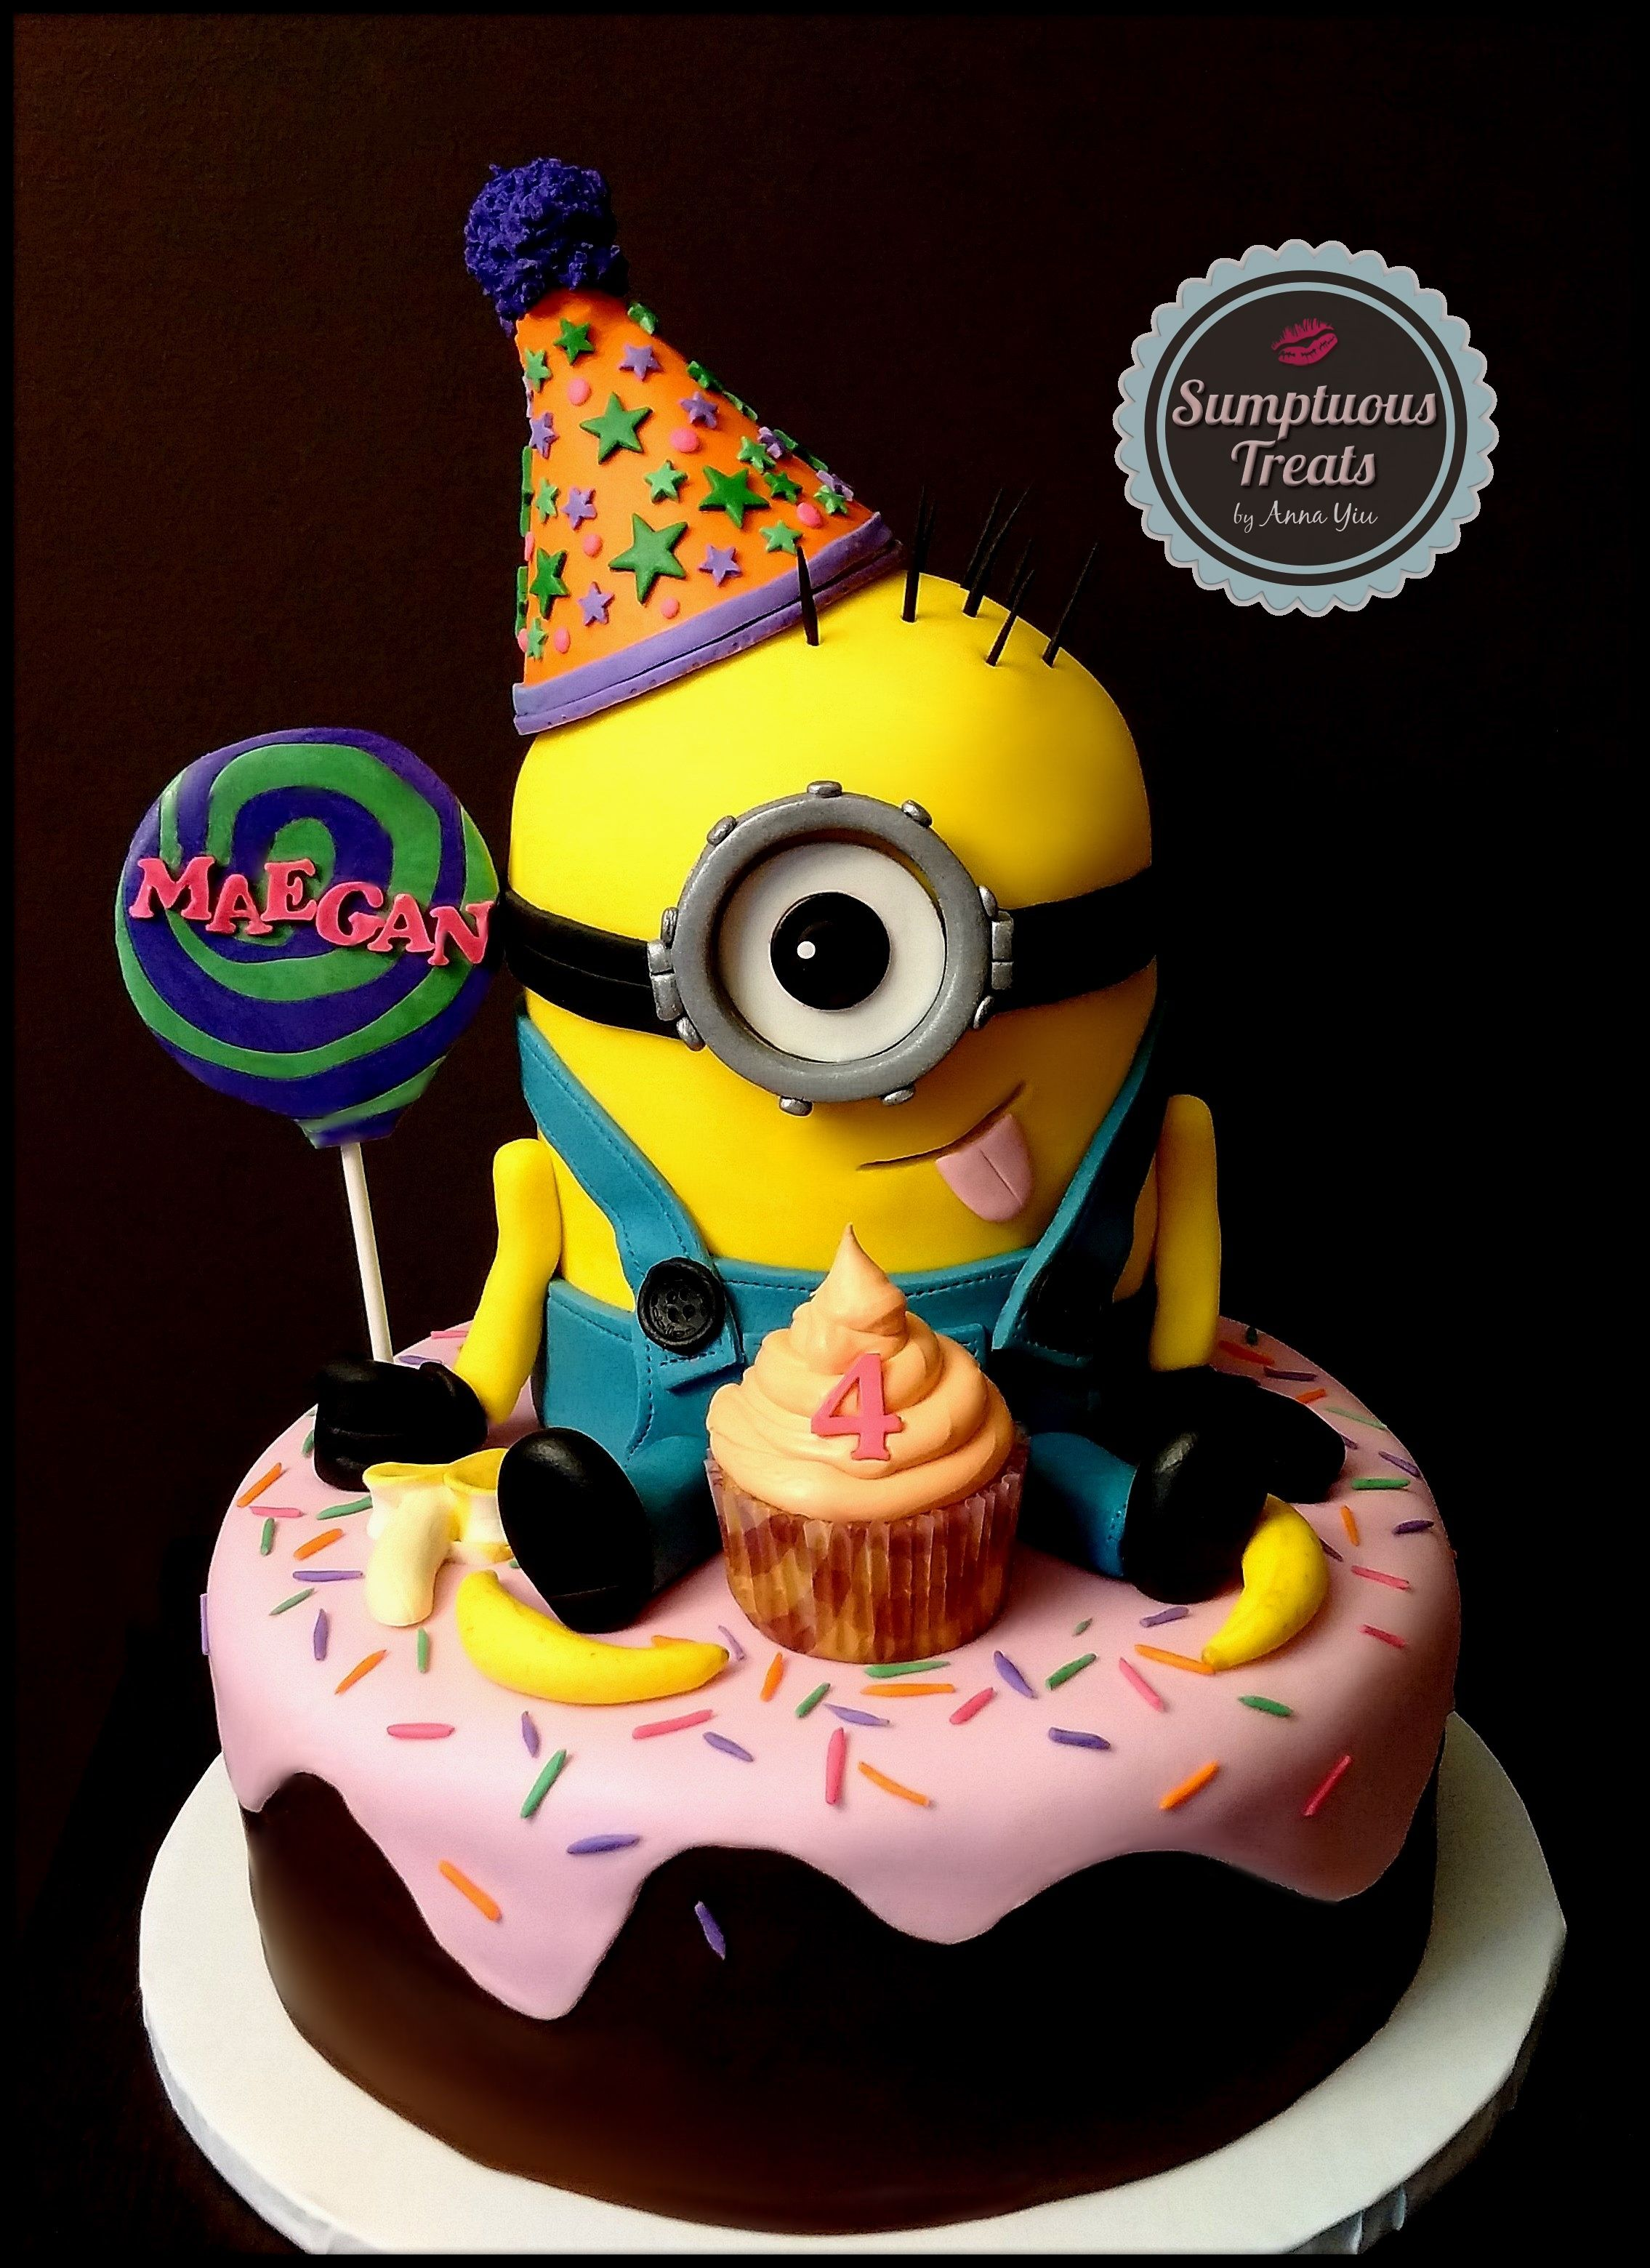 Minion Birthday Cake Custom Made To Order Cakes Desserts Edible Art Sumptuoustreats